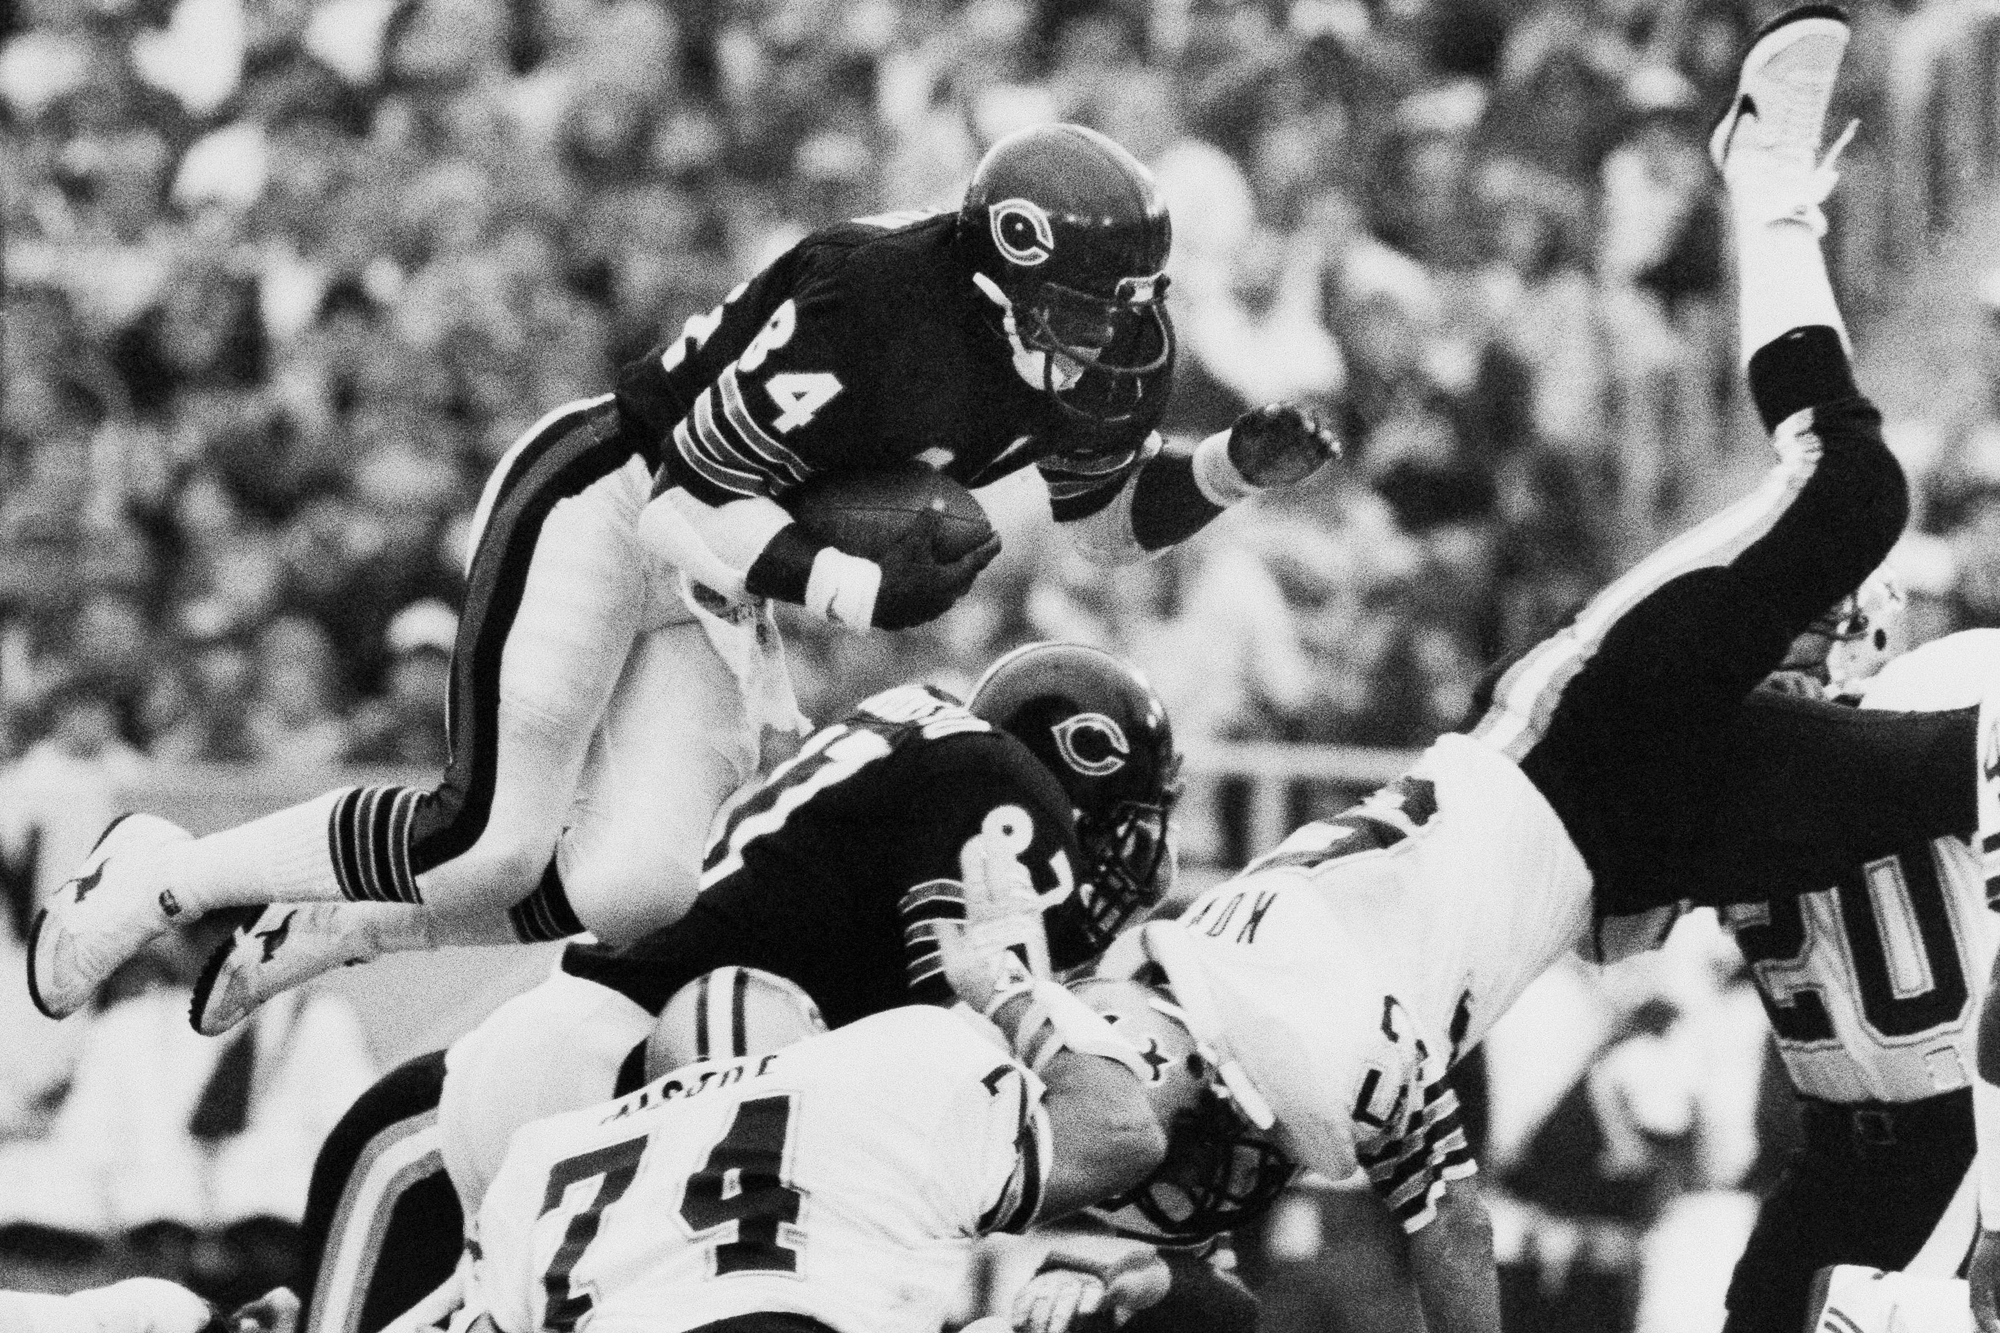 Chicago Bears' Walter Payton (34) is up and over for short yardage during second quarter action against the New Orleans Saints, Oct. 7, 1984, Chicago, Ill.